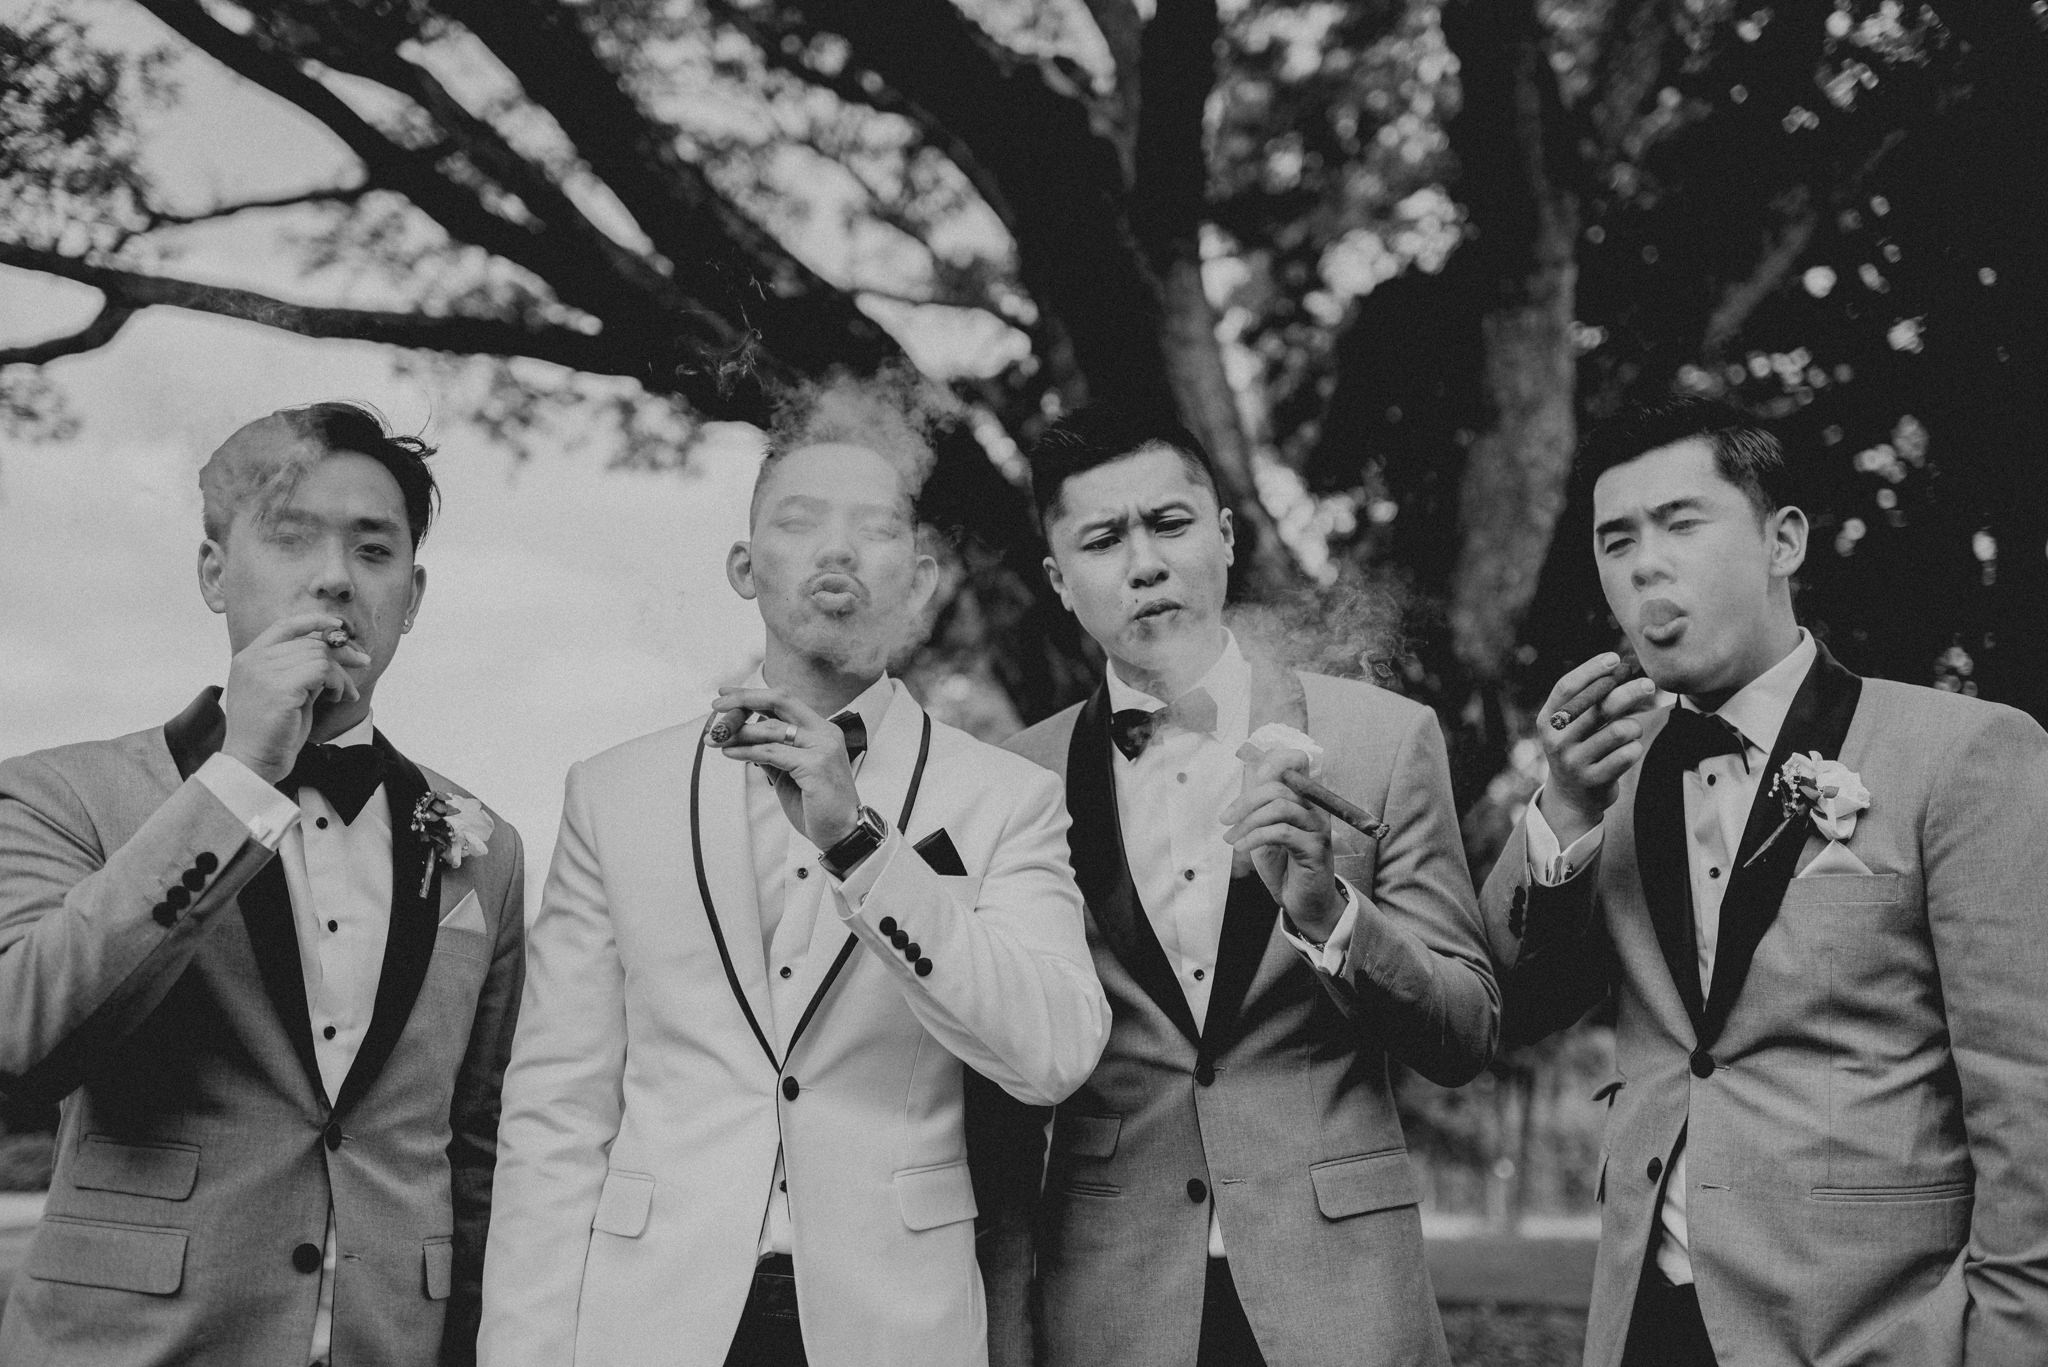 Four men in tuxedos smoke cigars and blow smoke in a line